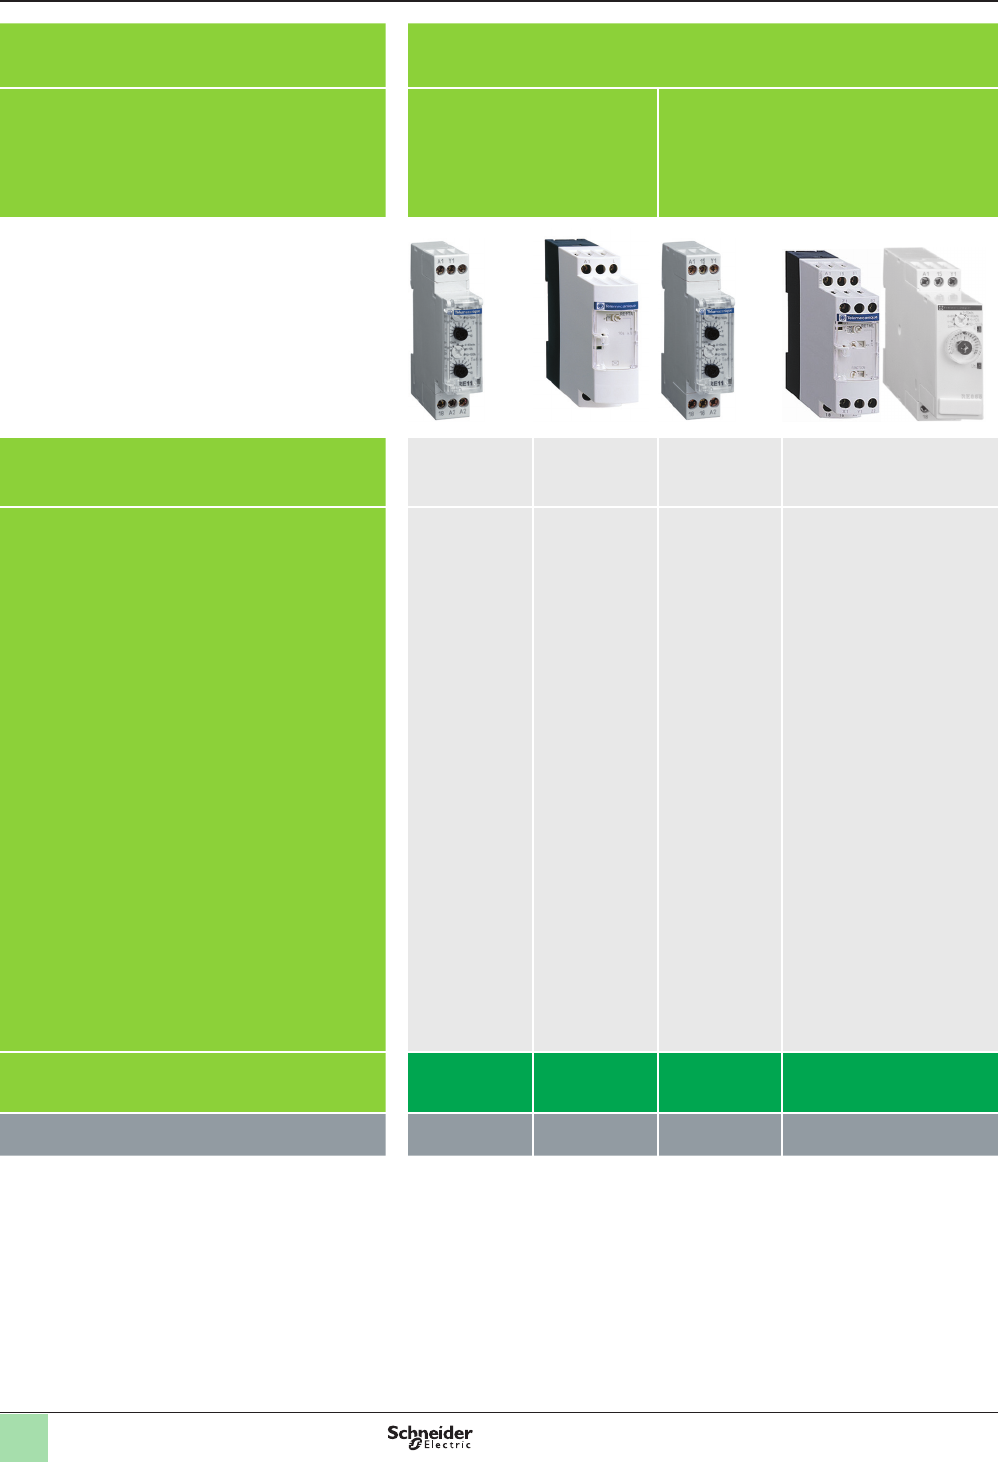 Schneider Electric Zelio Timing Relay Catalog 88814 New Zelior Solidstate Relays 4 Applications